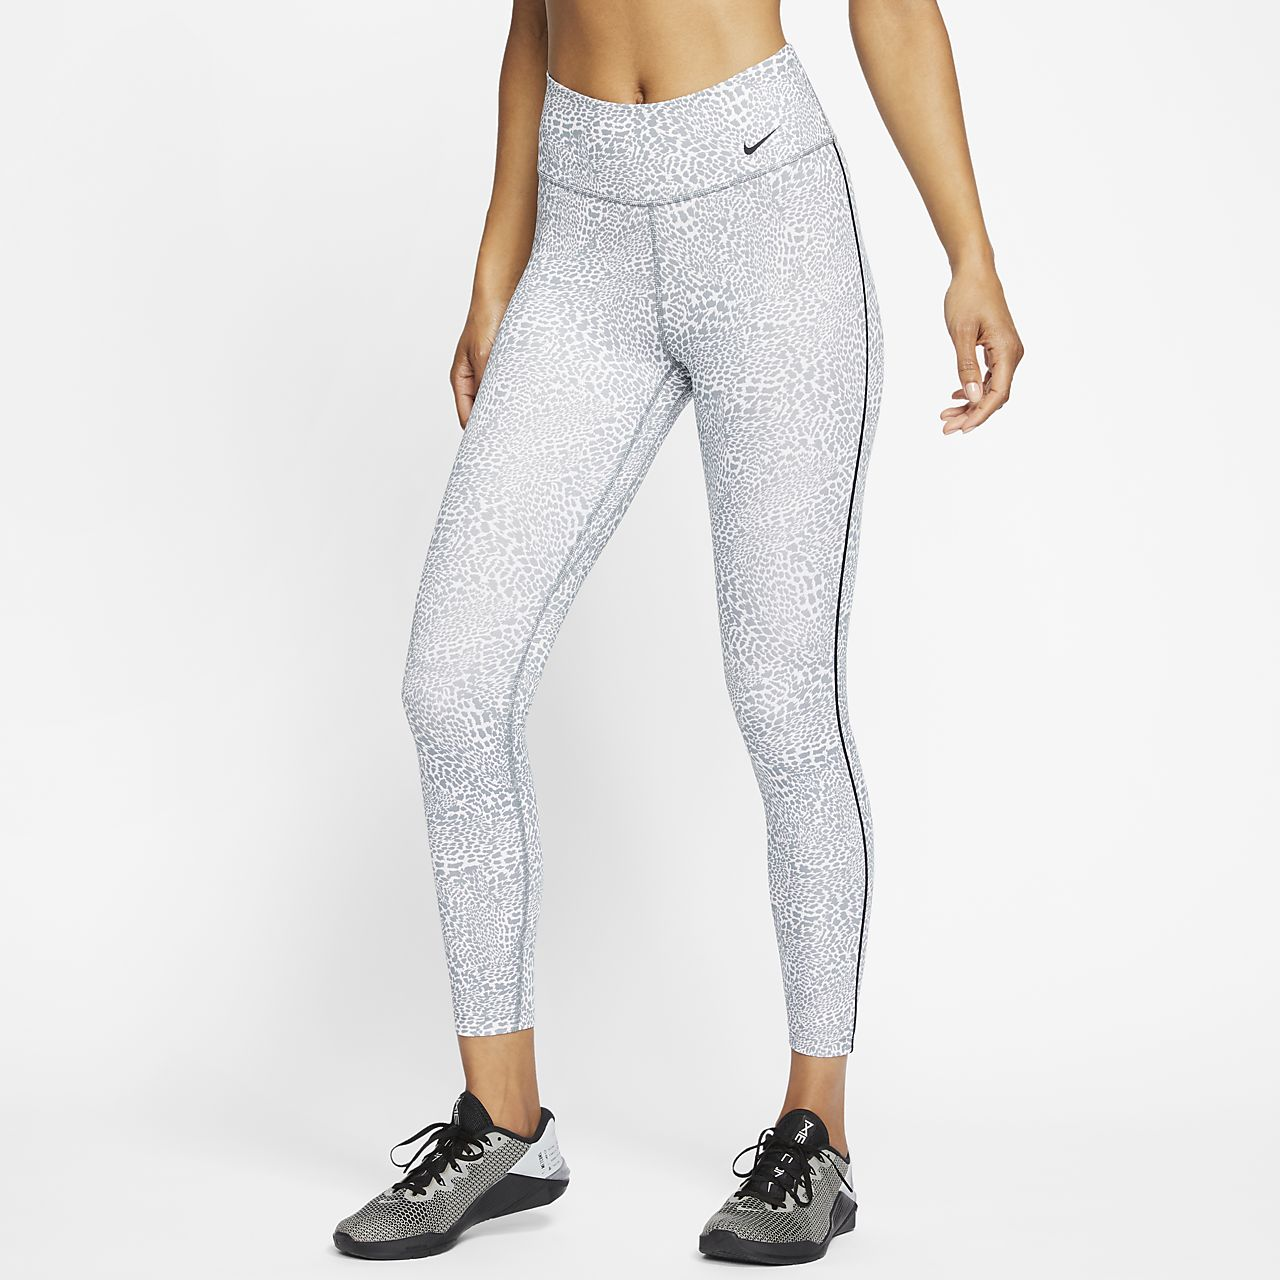 nike 7/8 leggings black